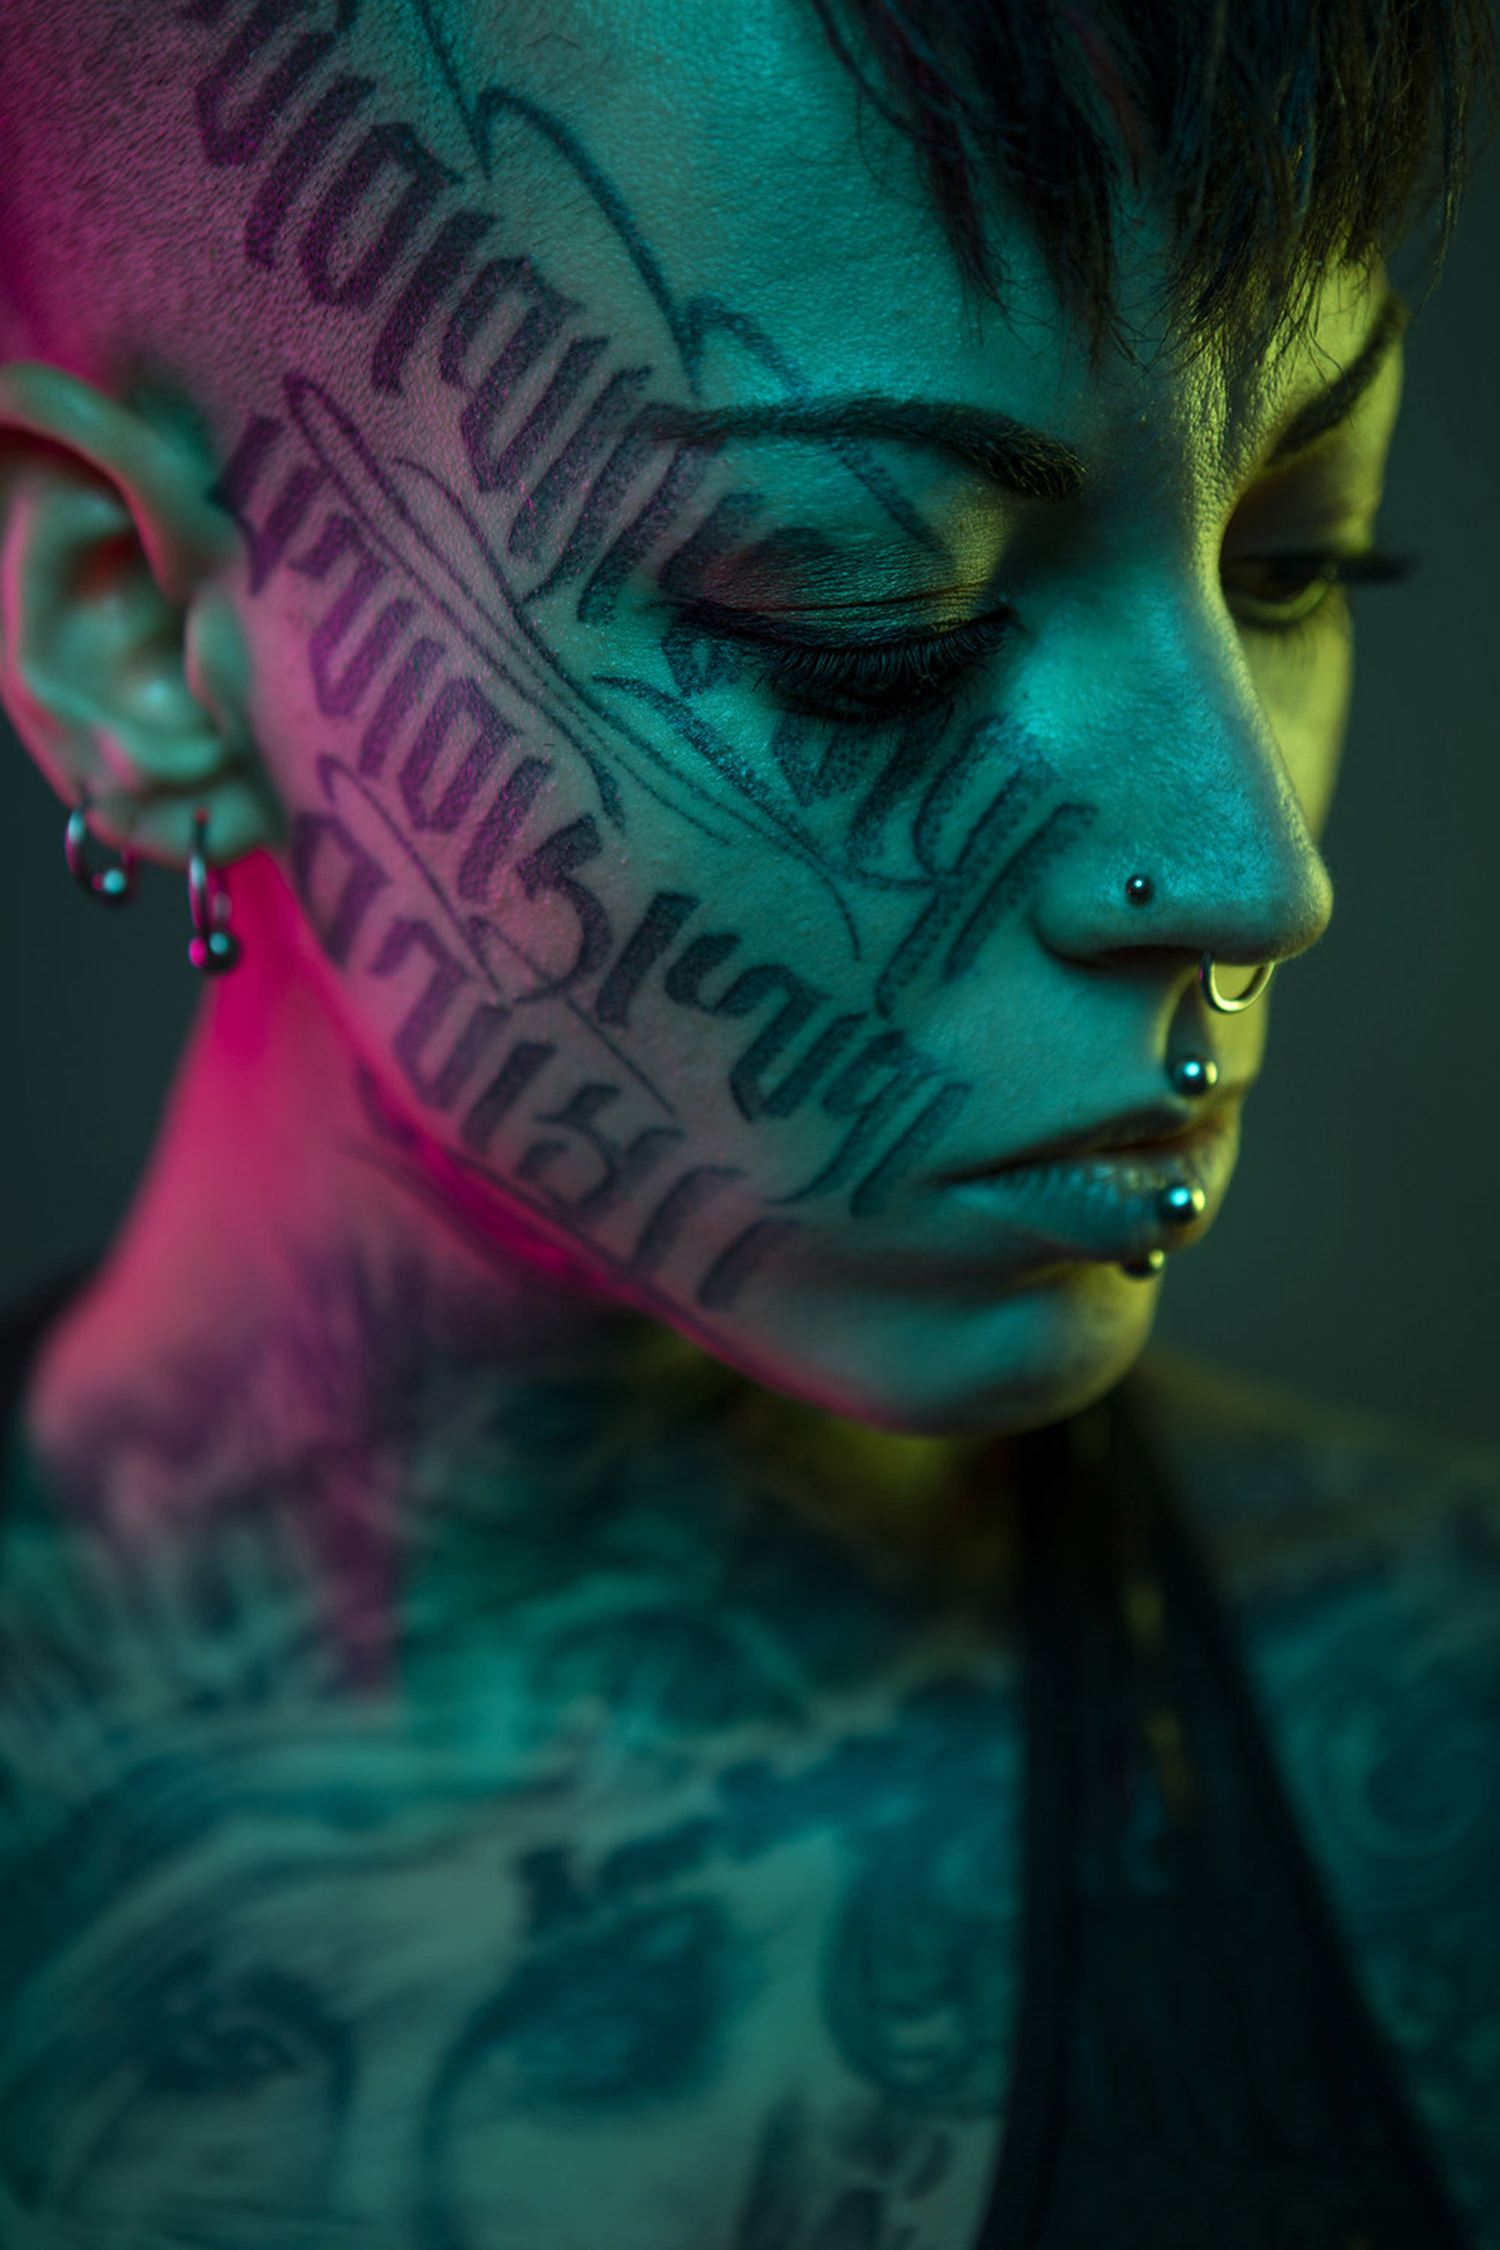 tattooed, calligraphy face, portrait photography